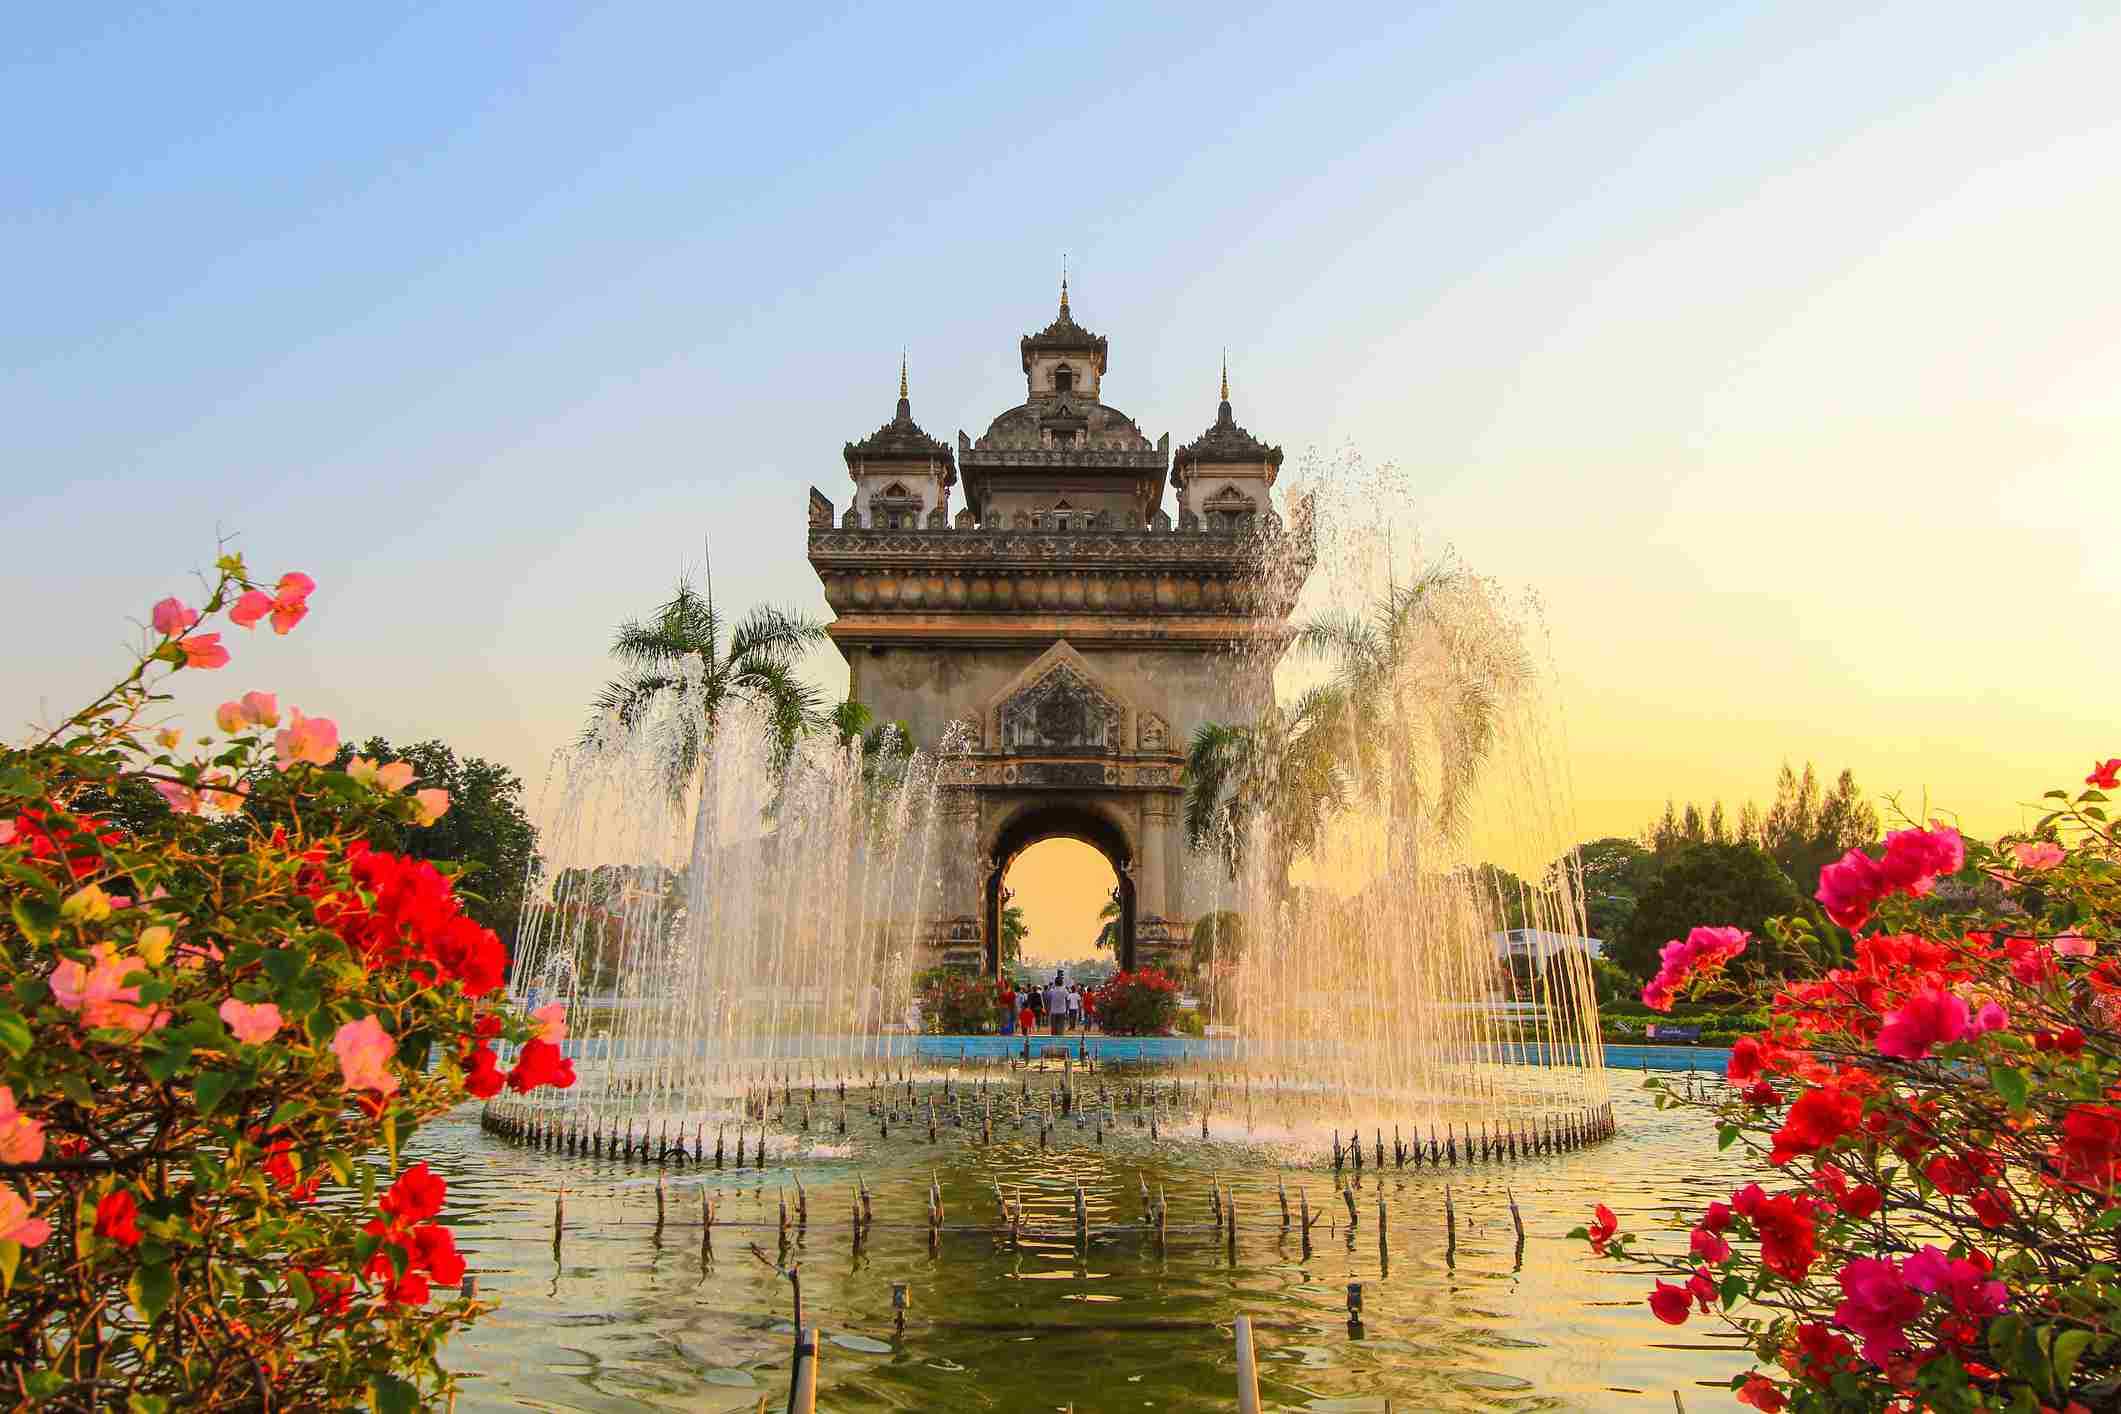 Patuxai (Victory Gate or Gate of Triumph) in the evening